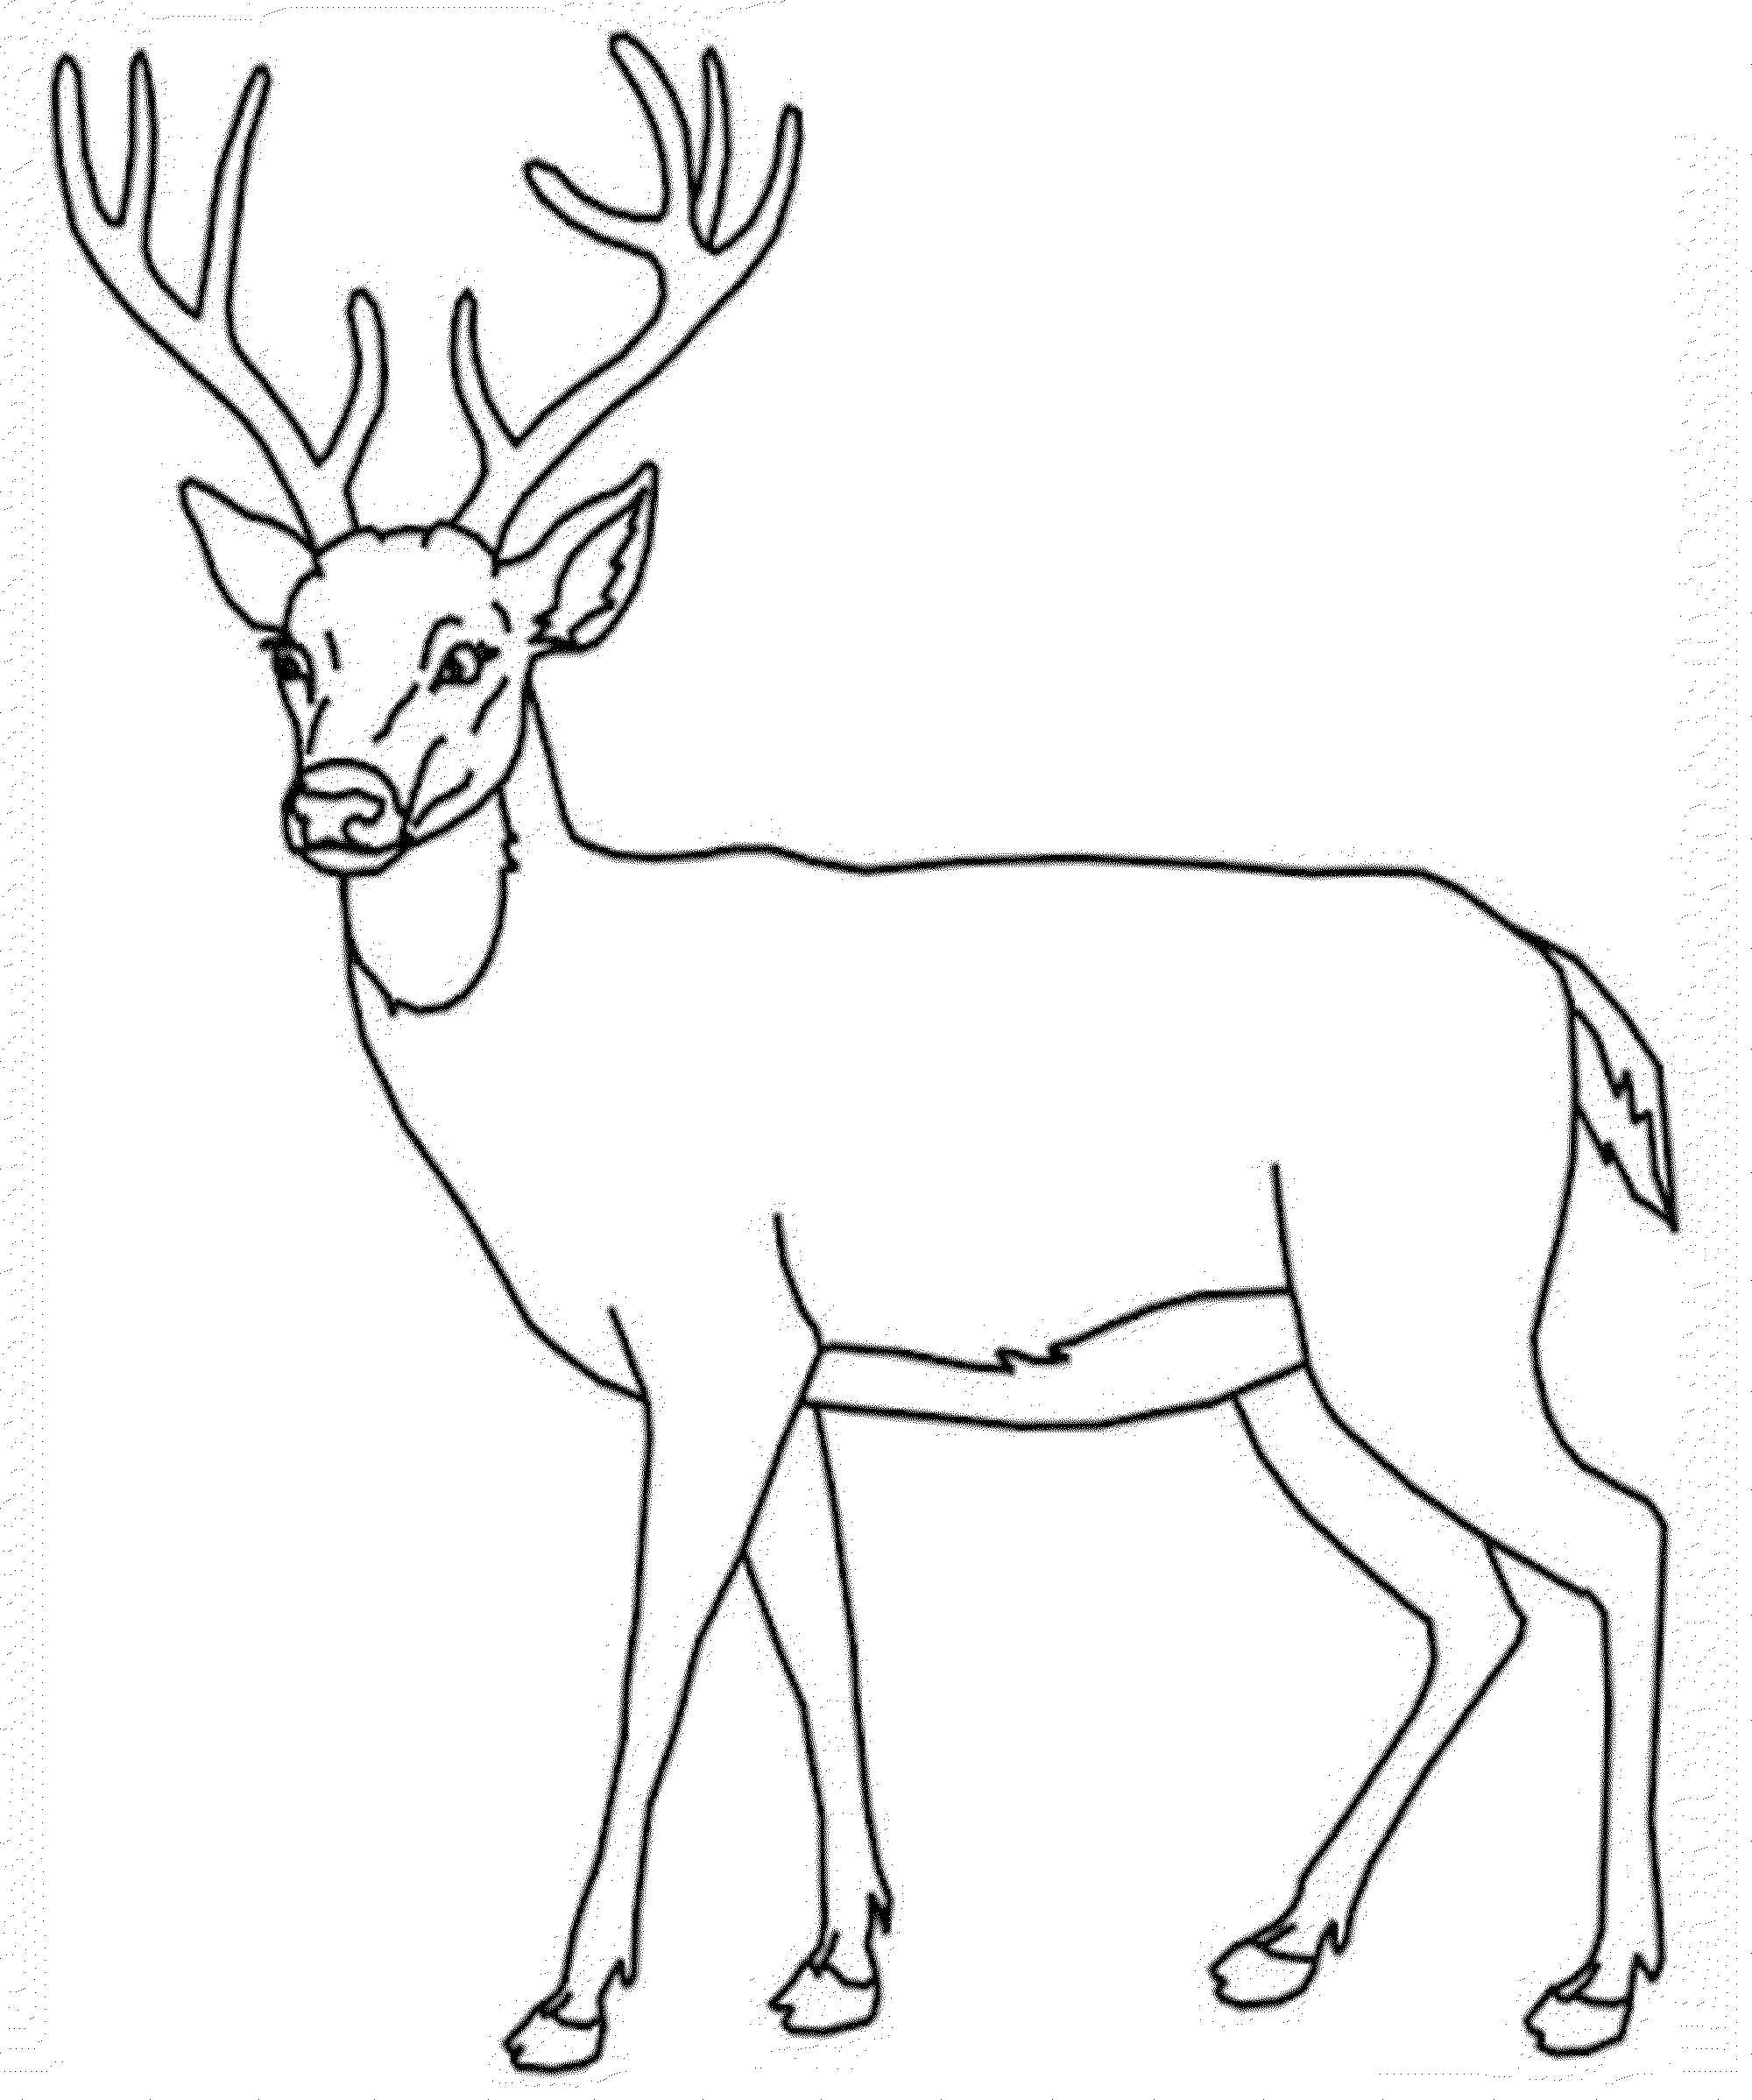 2000x2397 Reindeer Antlers Coloring Pages Printable Coloring For Kids